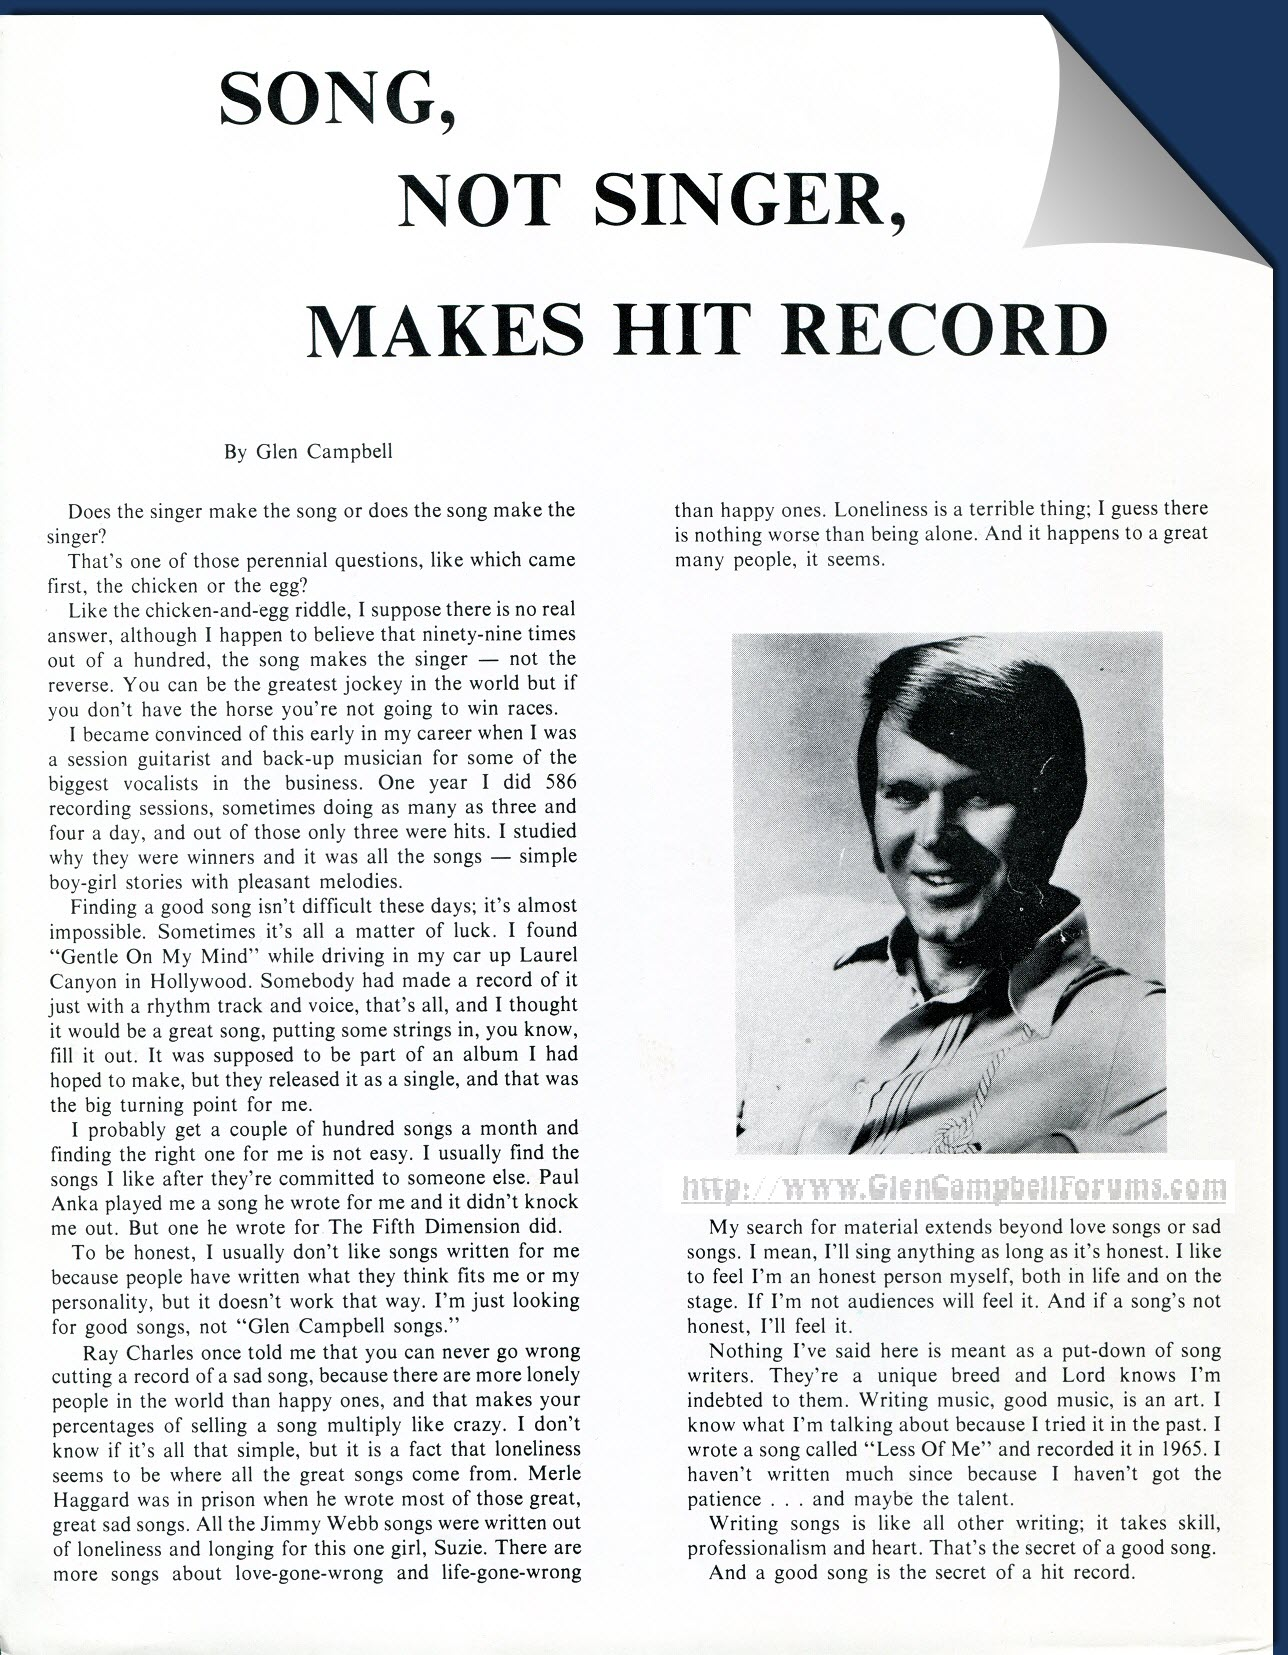 Song, Not Singer, Makes Hit Record_1970s_Official Glen Campbell International Fan Club Article-GCF on the Net-D. Zink Collection.jpg